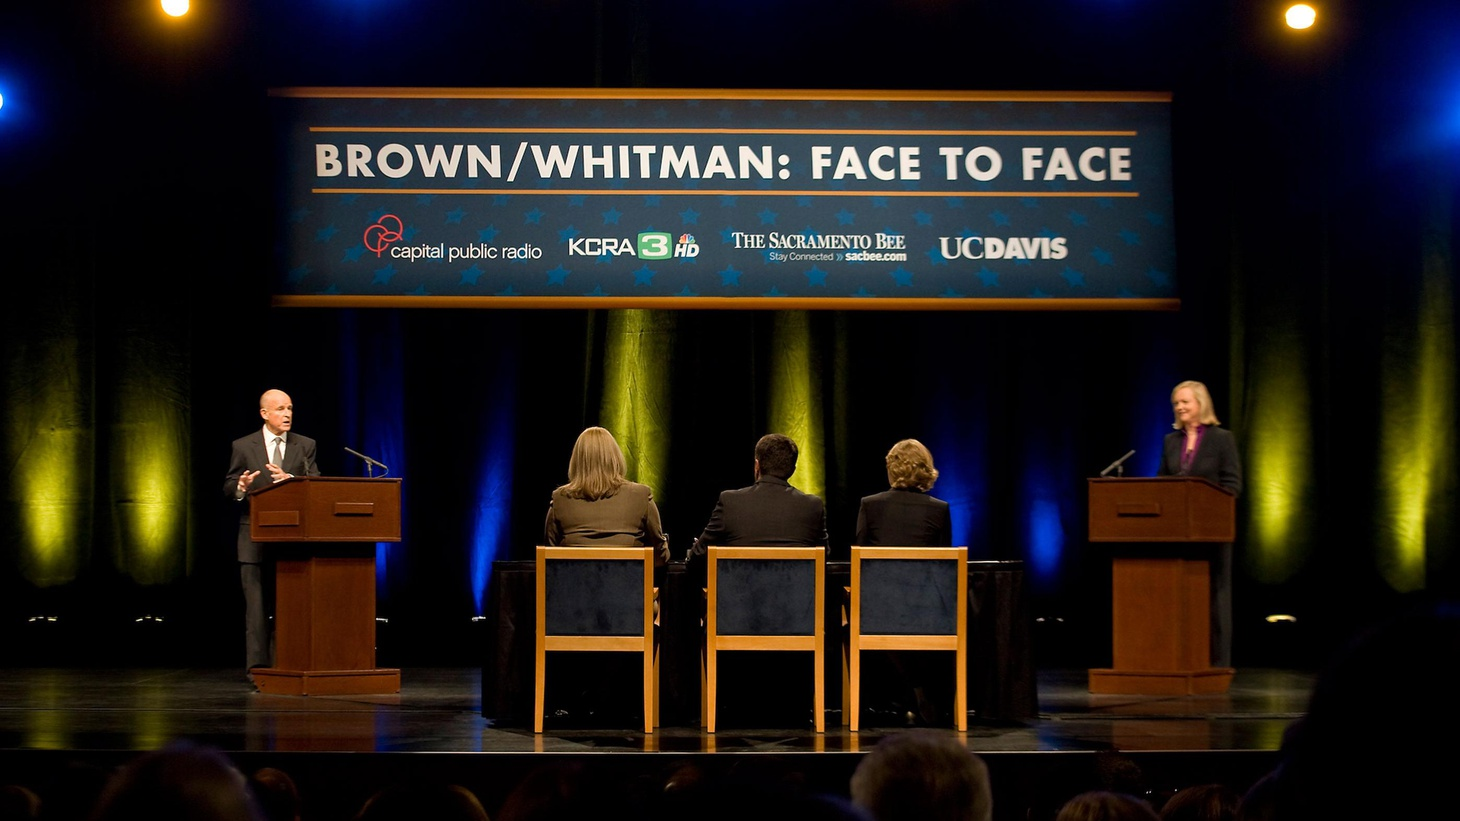 KCRW presents live coverage of the debate between Republican Meg Whitman and Democrat Jerry Brown, on Tuesday, September 28 from 6-7pm.